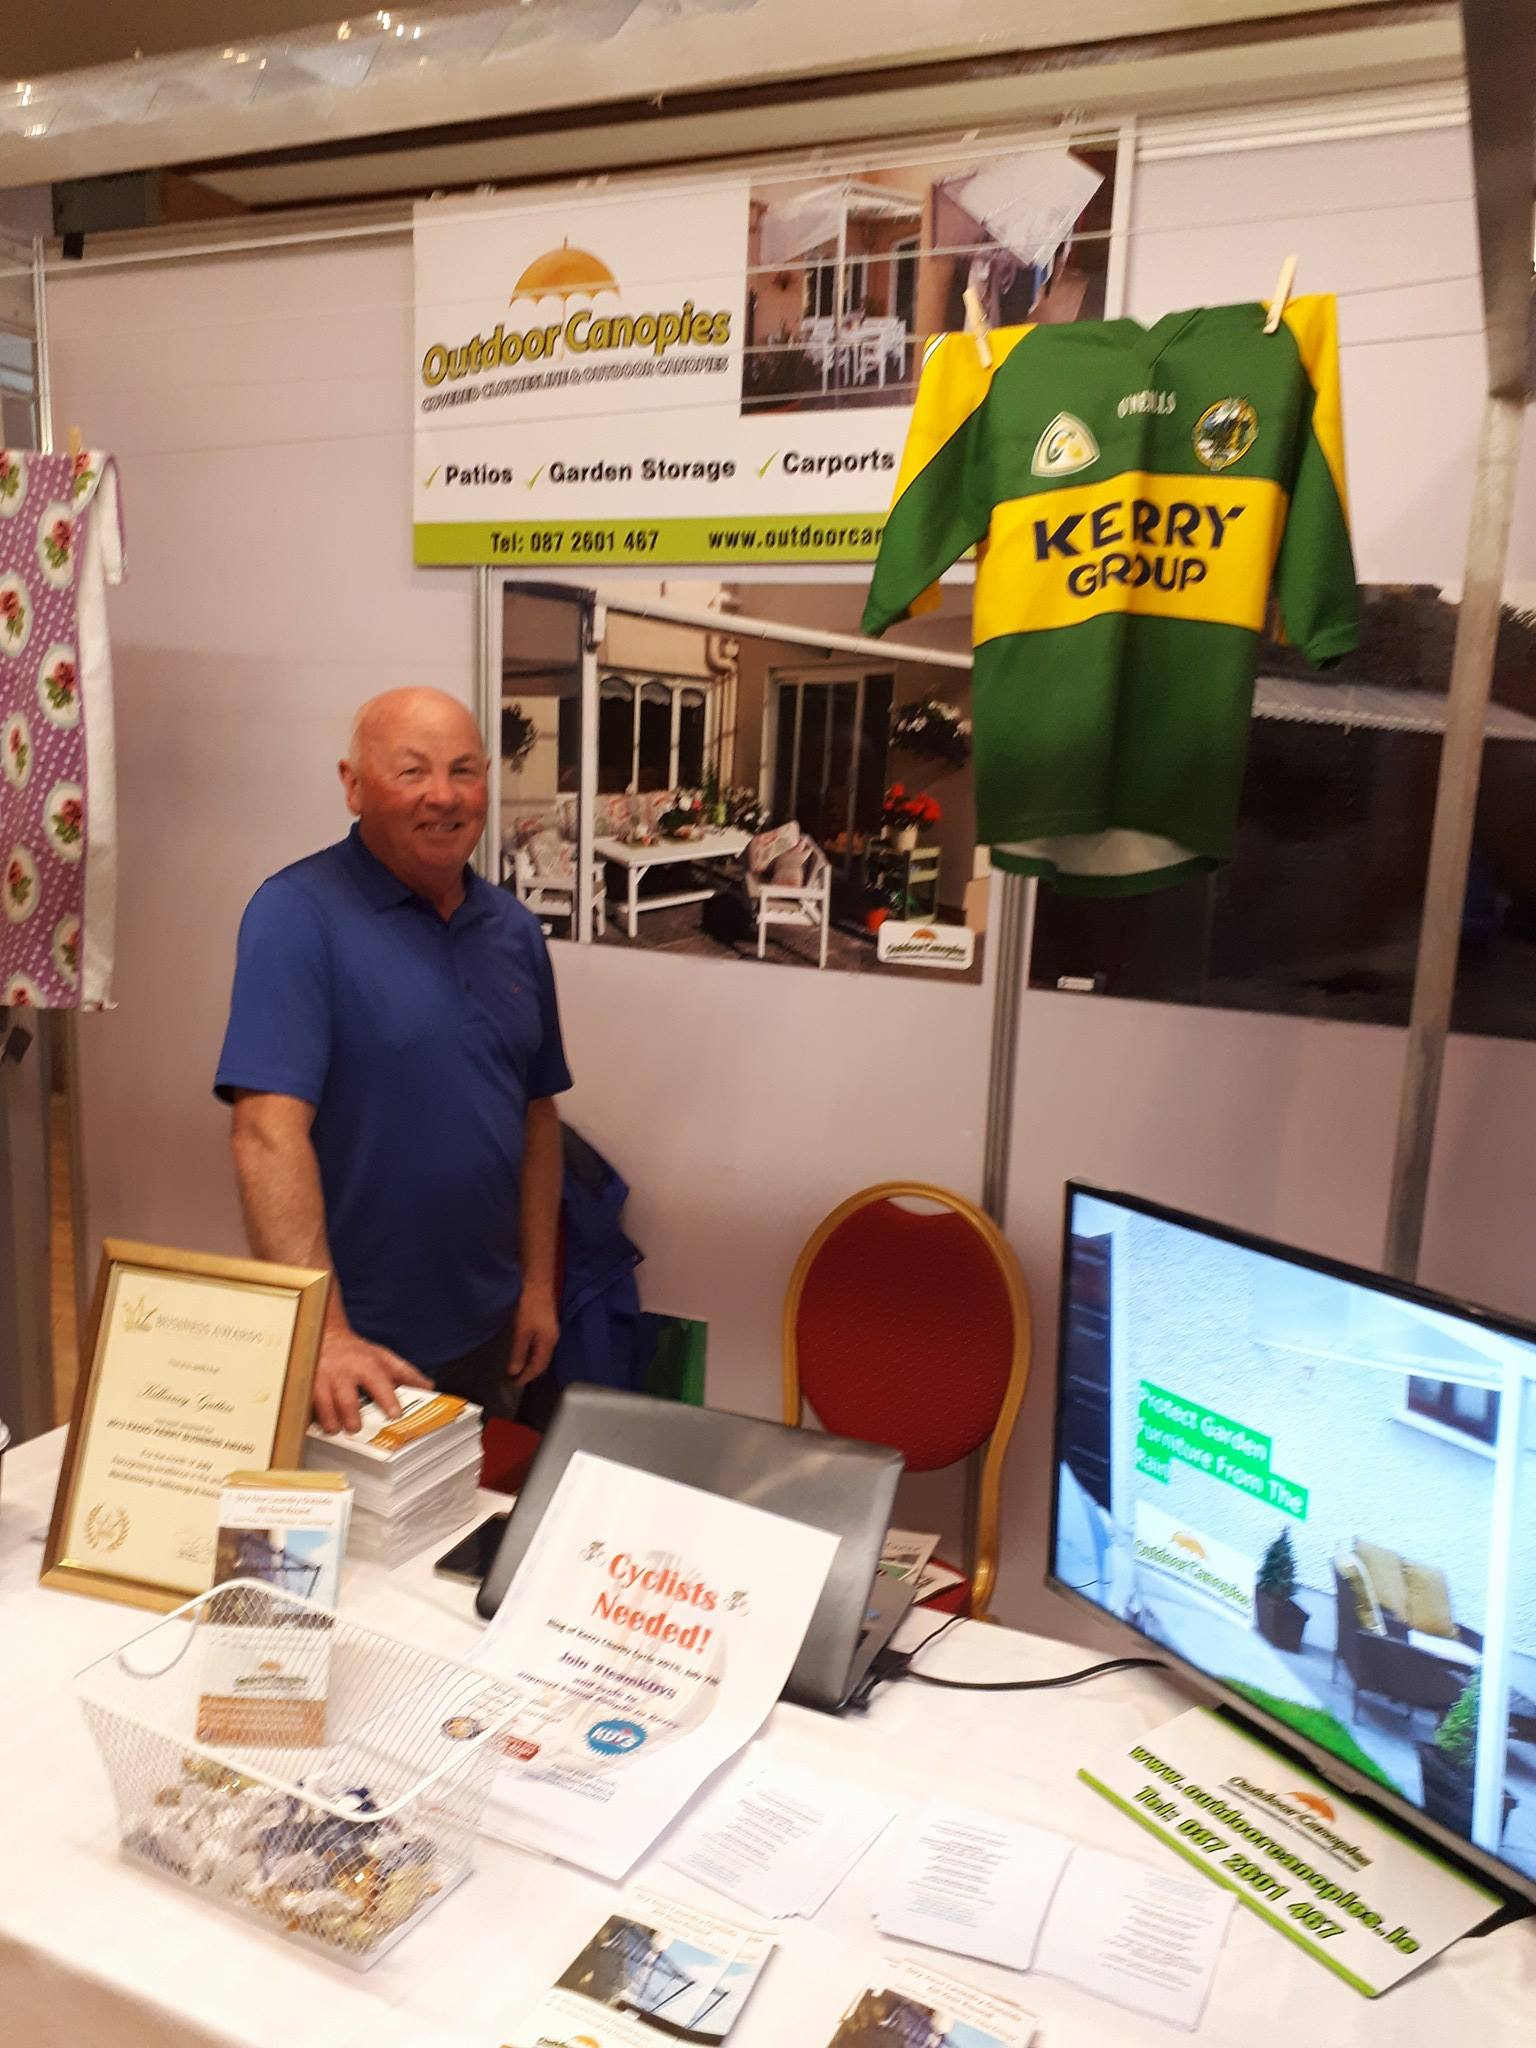 Kerry Expo 18 CC